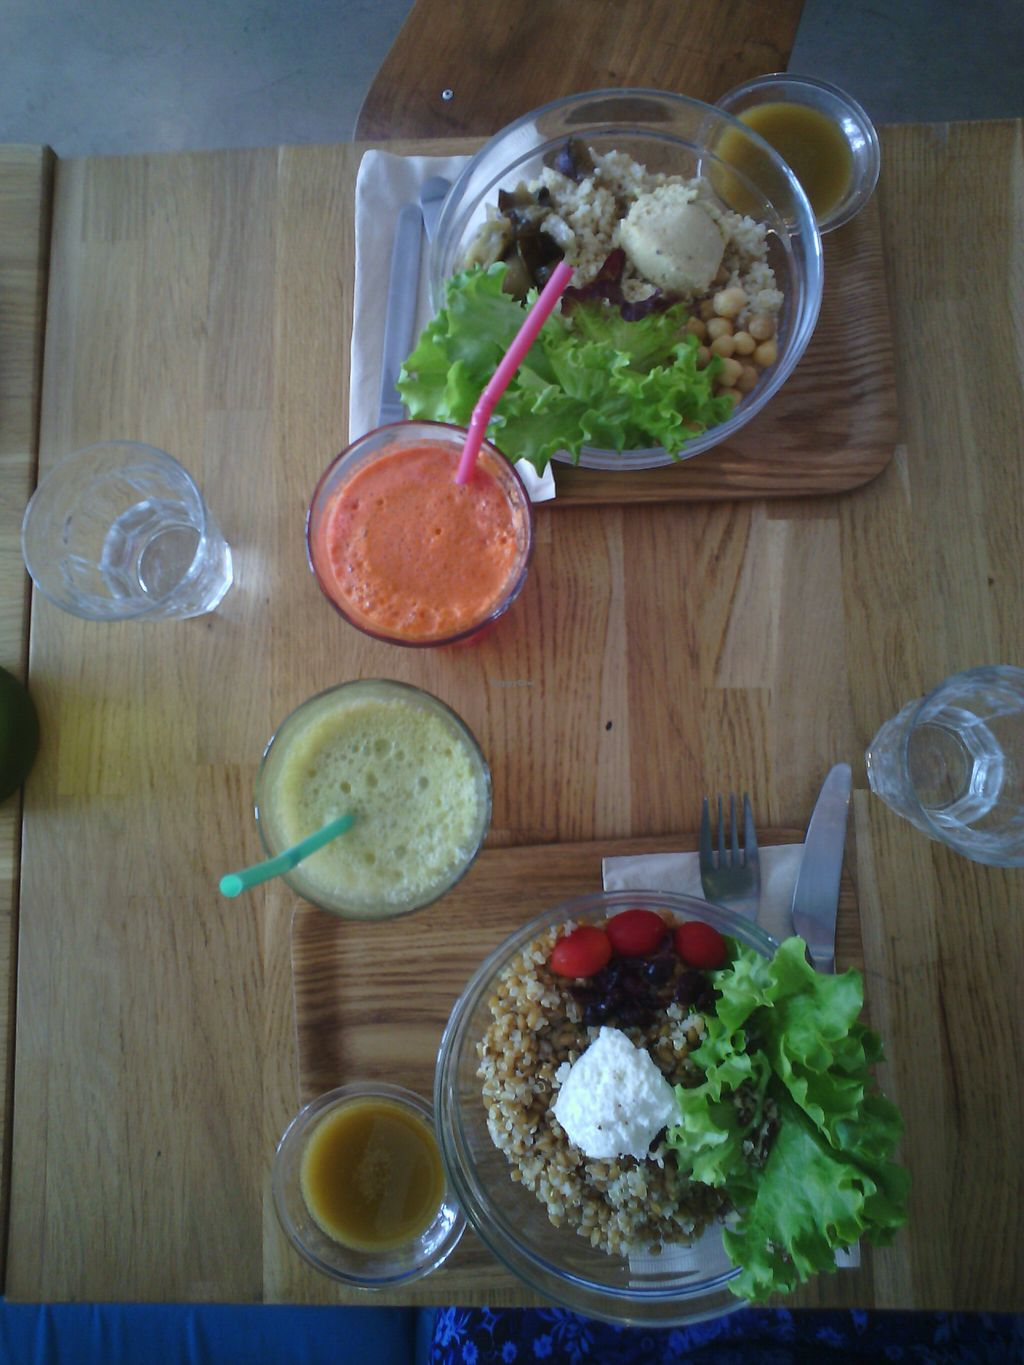 "Photo of ÖST café  by <a href=""/members/profile/hbanlin"">hbanlin</a> <br/>Andine salad (quinoa+goat cheese+ dried grapes) and Beyrouth salad (boulghour+zucchini hummous+chickpeas+roasted eggplant) with both green and energy juice <br/> August 14, 2015  - <a href='/contact/abuse/image/60710/113545'>Report</a>"